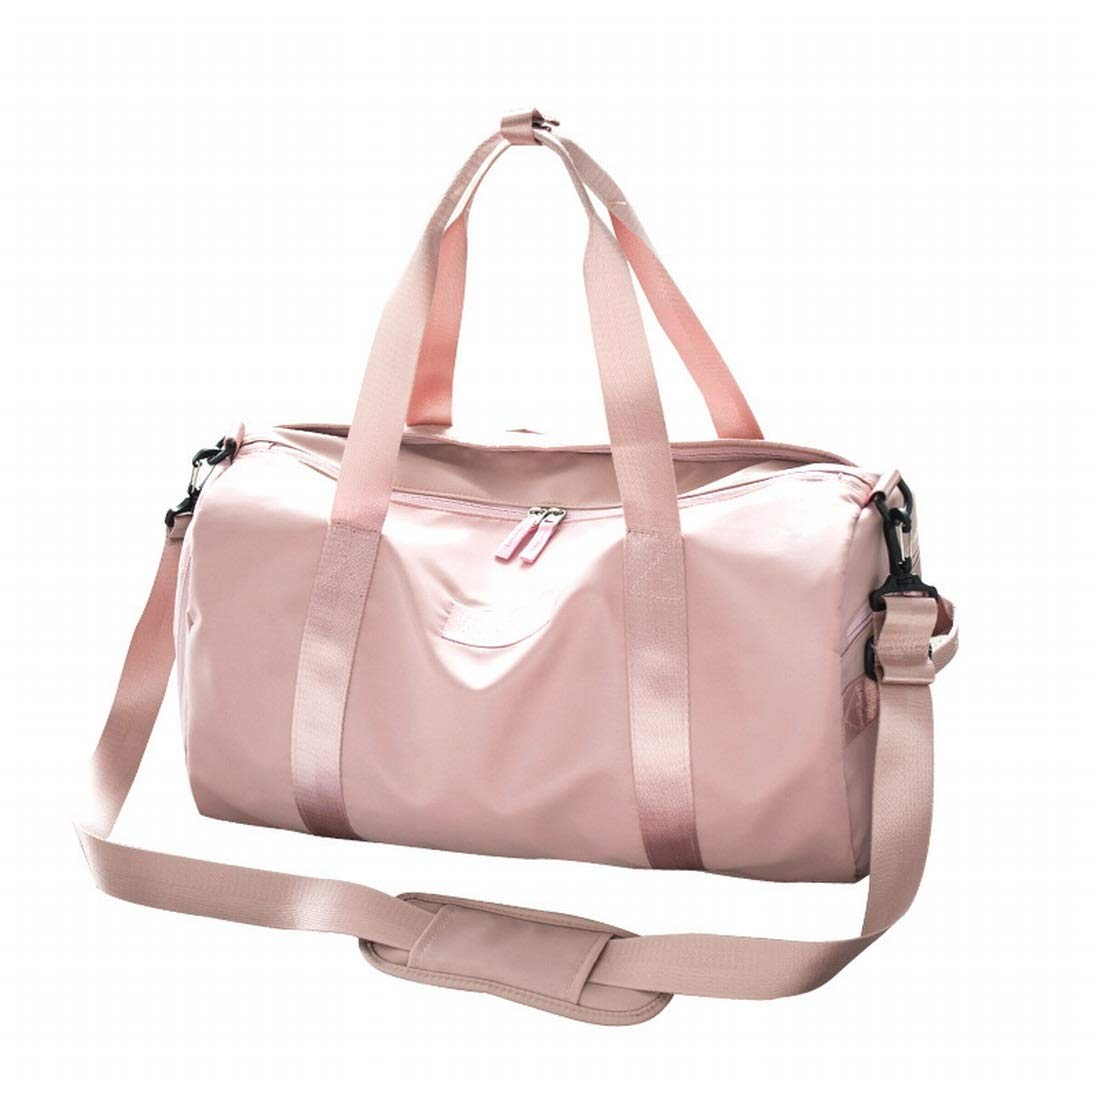 Color : Pink, Size : Small Souliyan Sports Fitness Bag Training Package with Shoes Compartment Dry and Wet Separate Baggage Travel Bag for Women Men